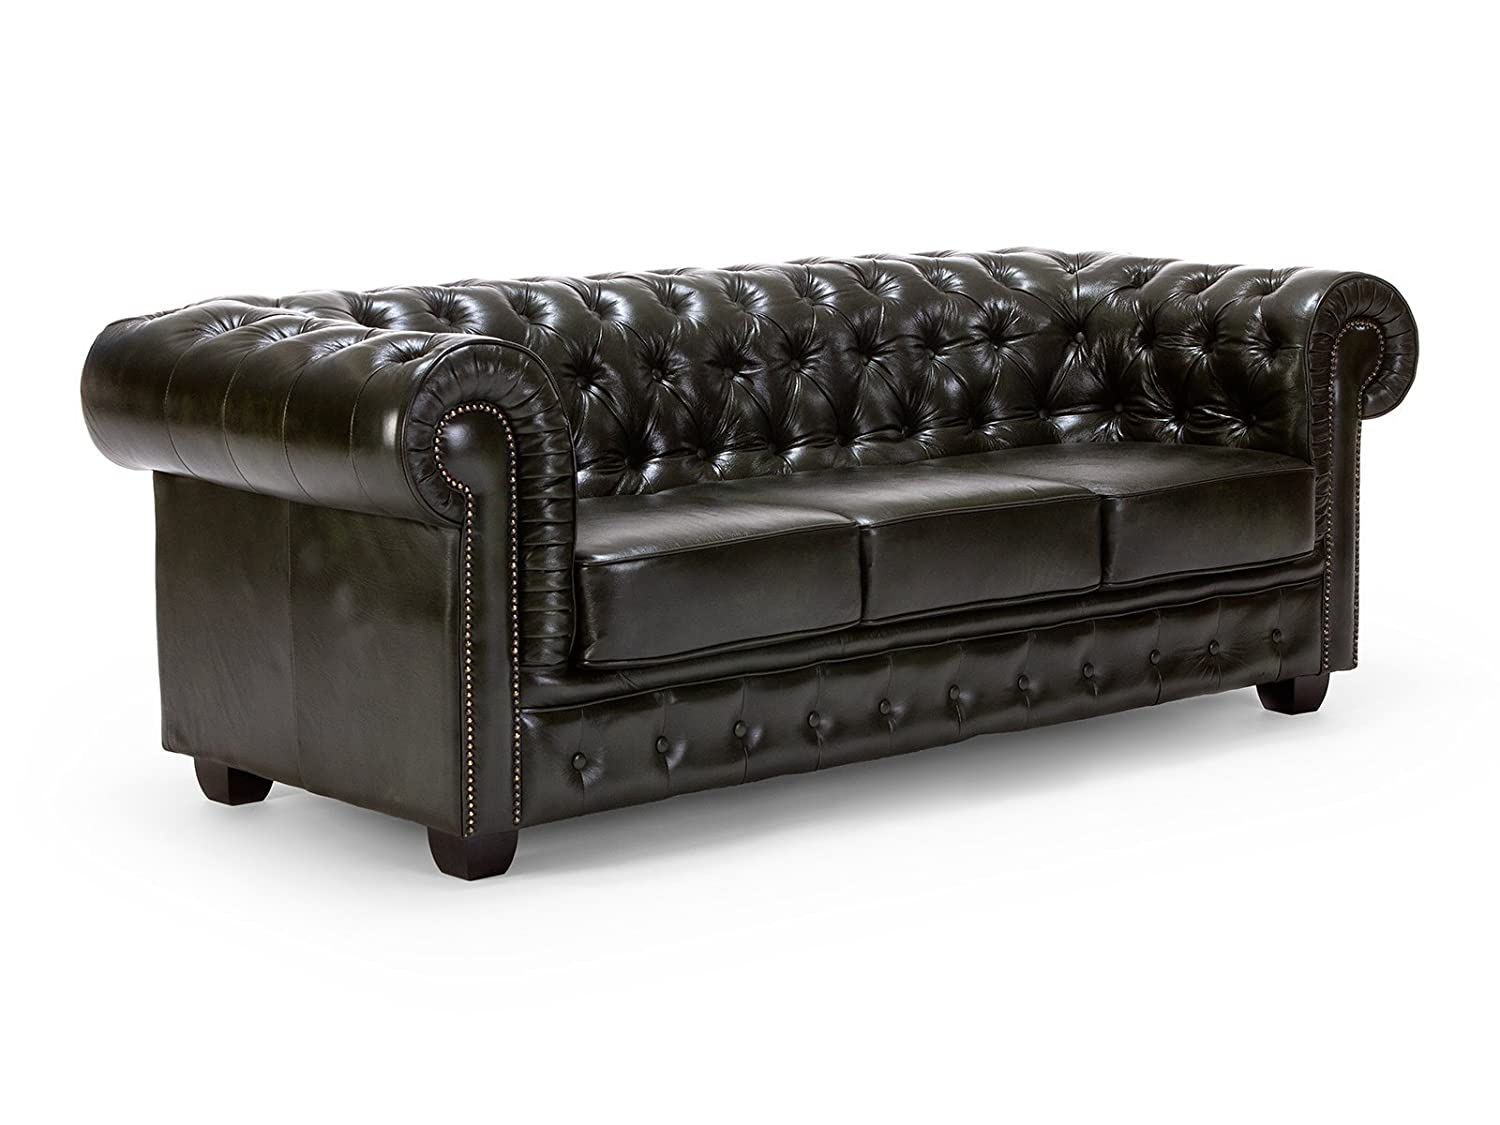 massivum 10000059 chesterfield sofa 3 sitzer antik echtleder gr n 95 x 218 x 79 cm g nstig. Black Bedroom Furniture Sets. Home Design Ideas